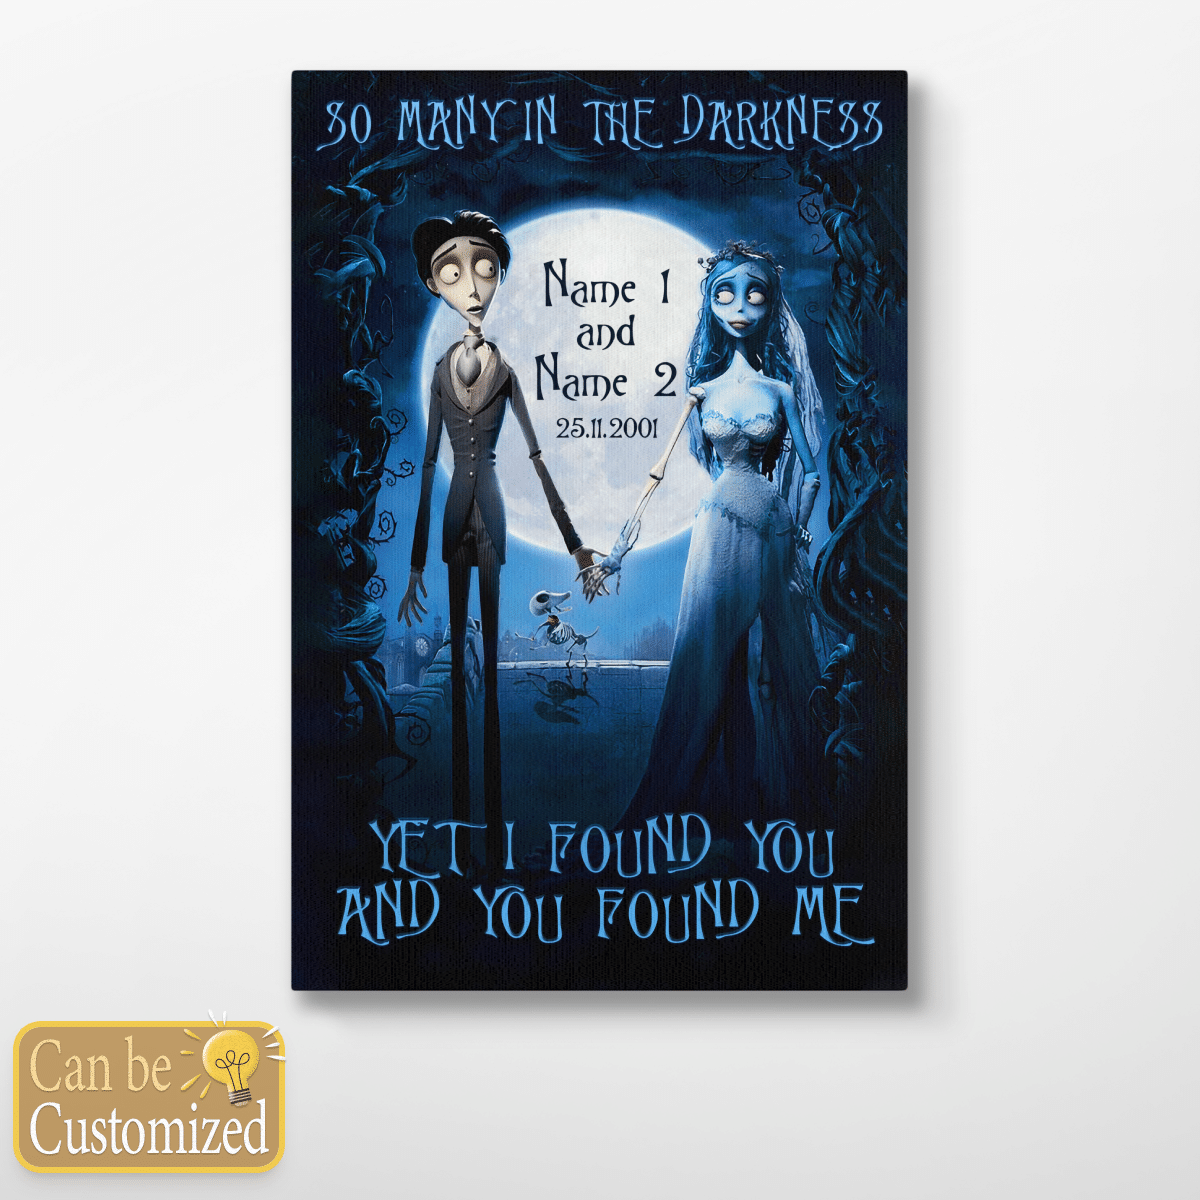 Custom couple Name So many in the darkness yet I found You and You found me Poster Canvas jigsaw